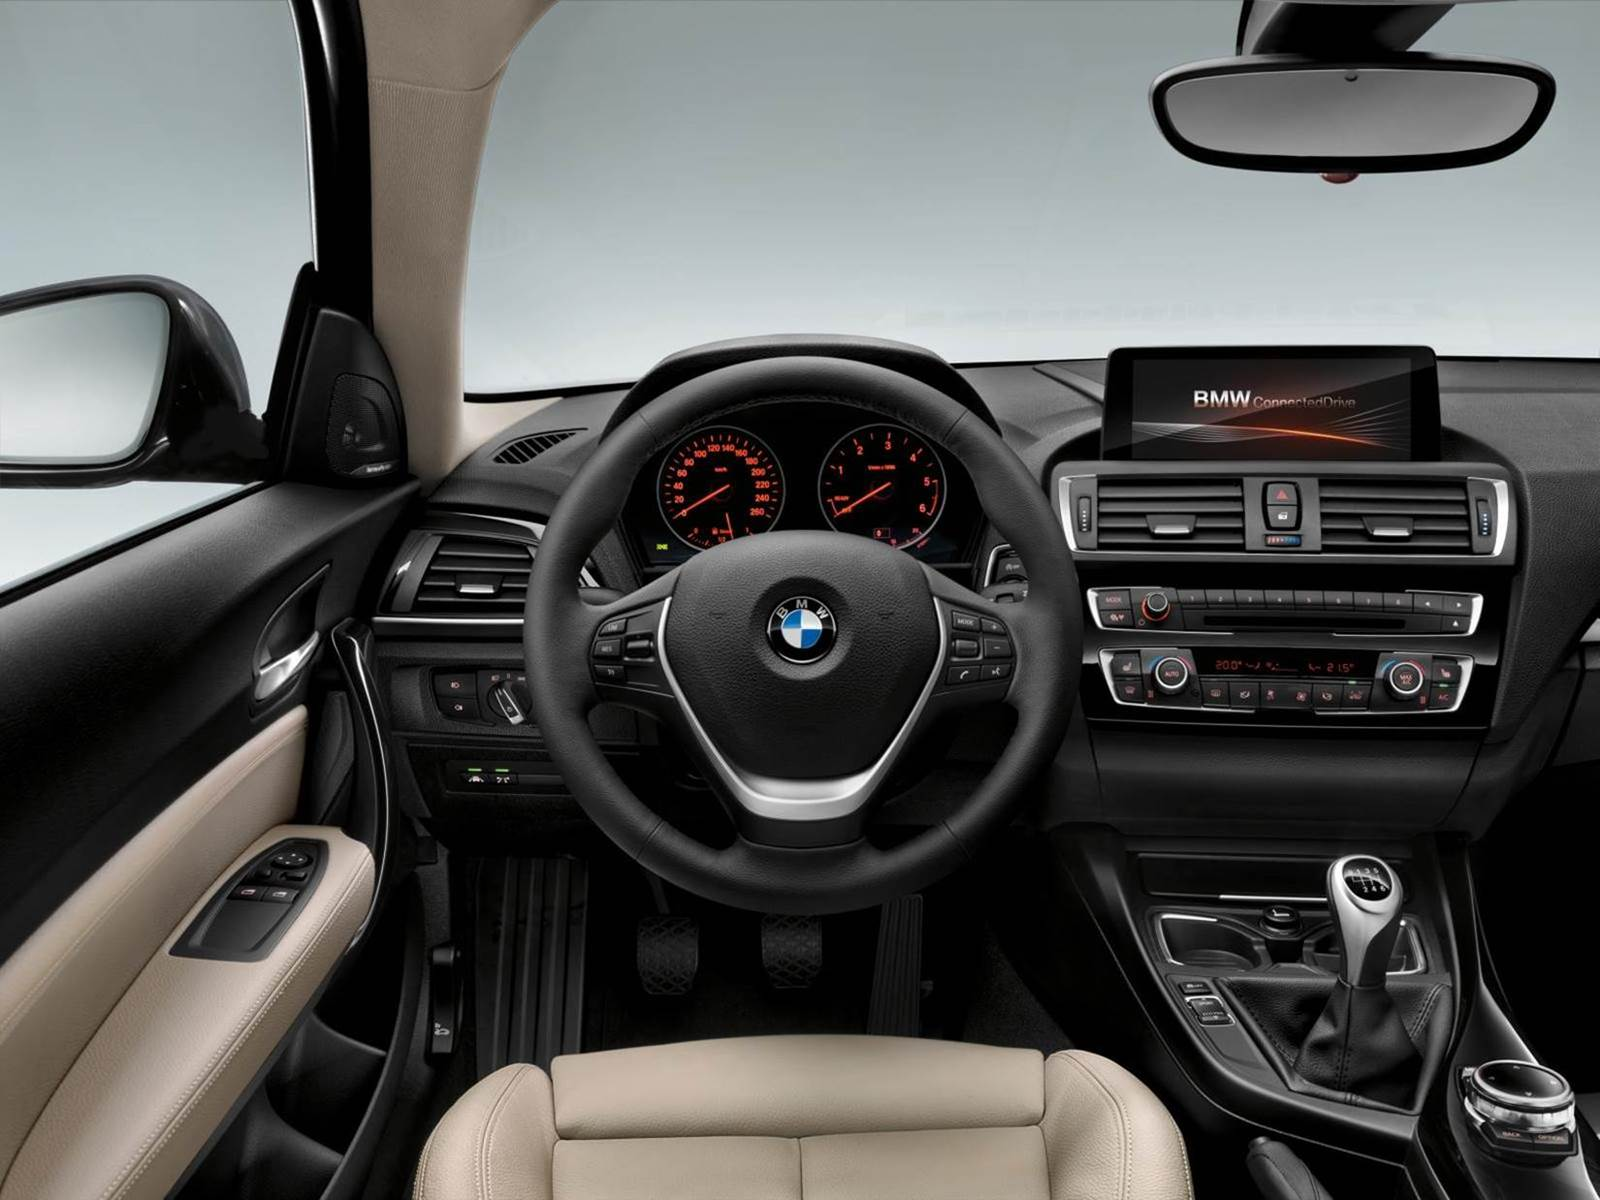 novo bmw s rie 1 2015 com facelift fotos e v deo oficiais. Black Bedroom Furniture Sets. Home Design Ideas